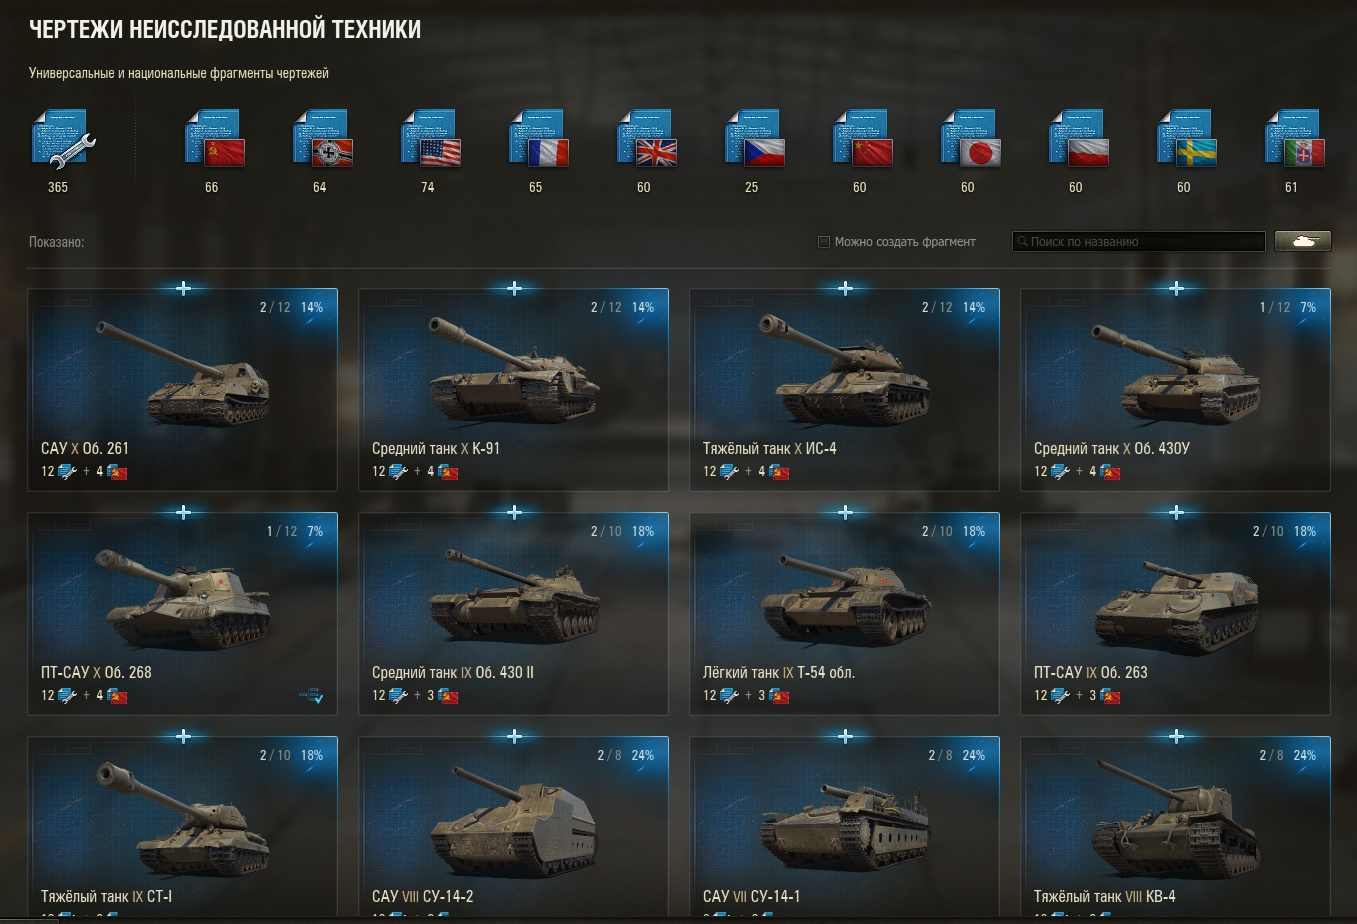 Defender, SU-130PM, Object 703 II - personal WOT accoun